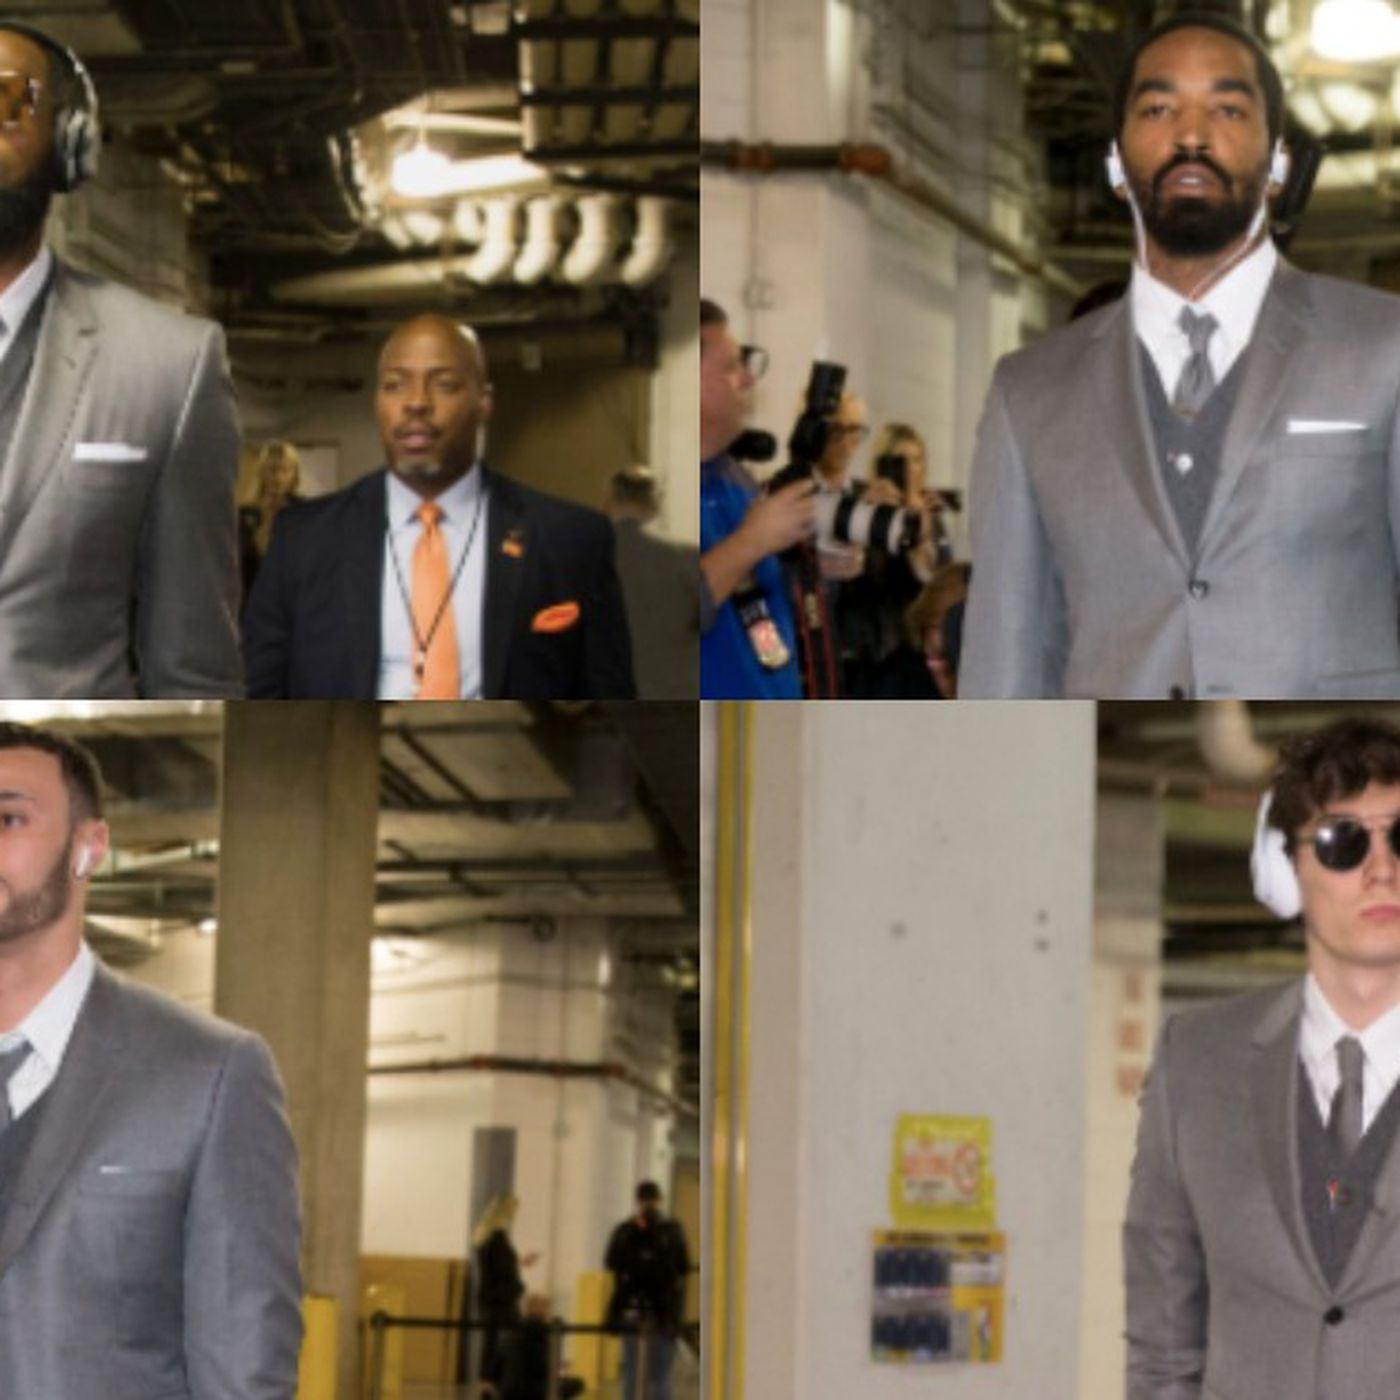 6bf2b95f4dd LeBron James made the Cavs wear matching Thom Browne suits before Game 3 -  SBNation.com